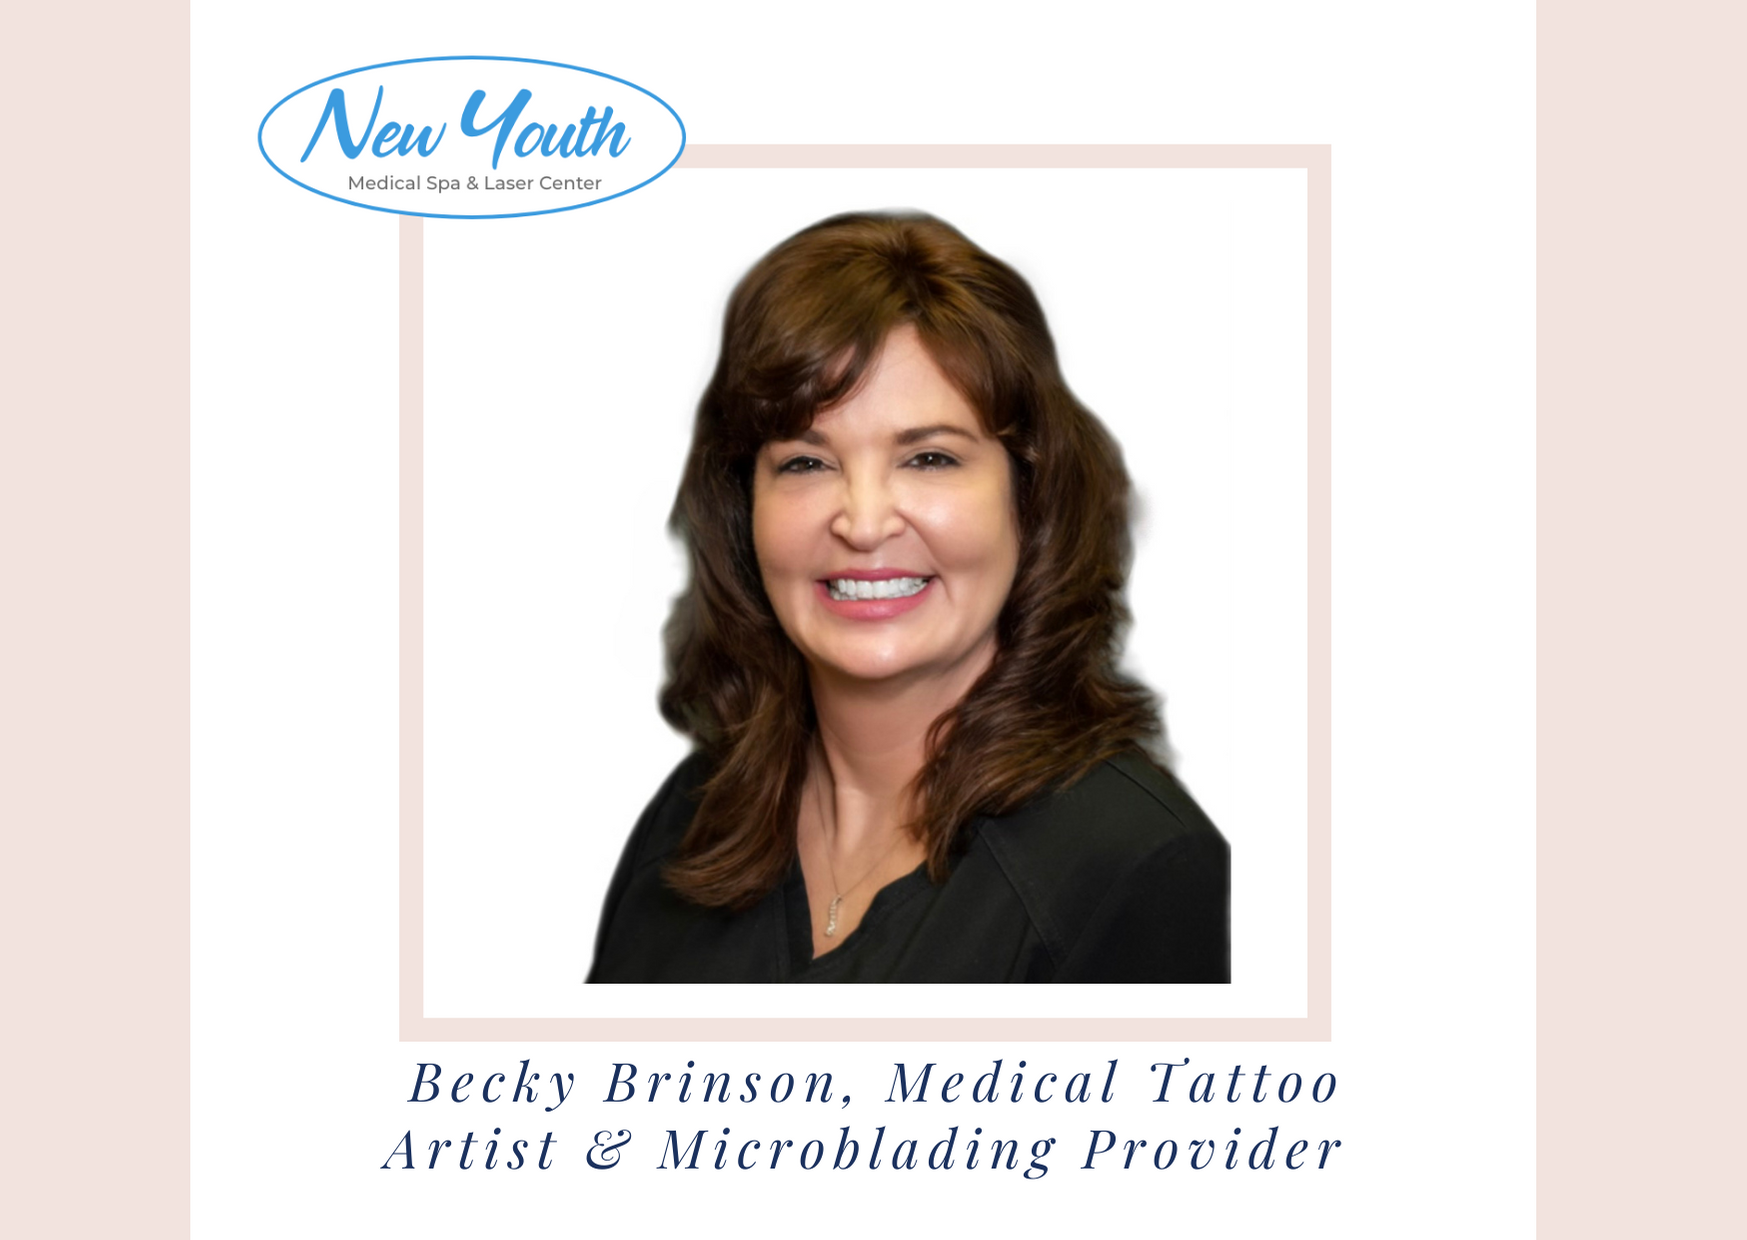 Meet our team - Becky Brinson at New Youth Medical Spa